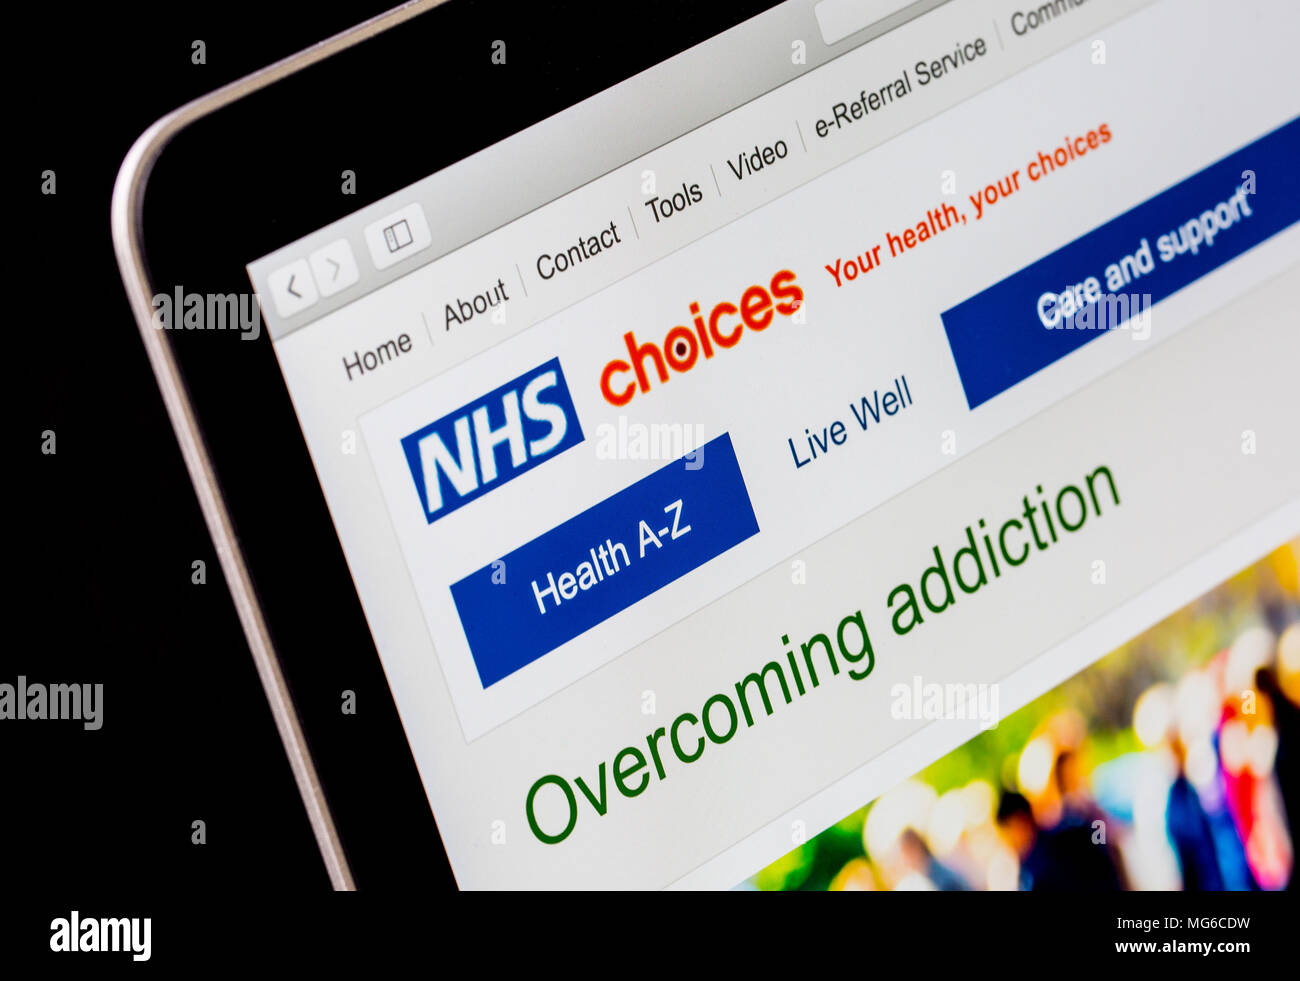 NHS Choices website on a laptop computer - Stock Image